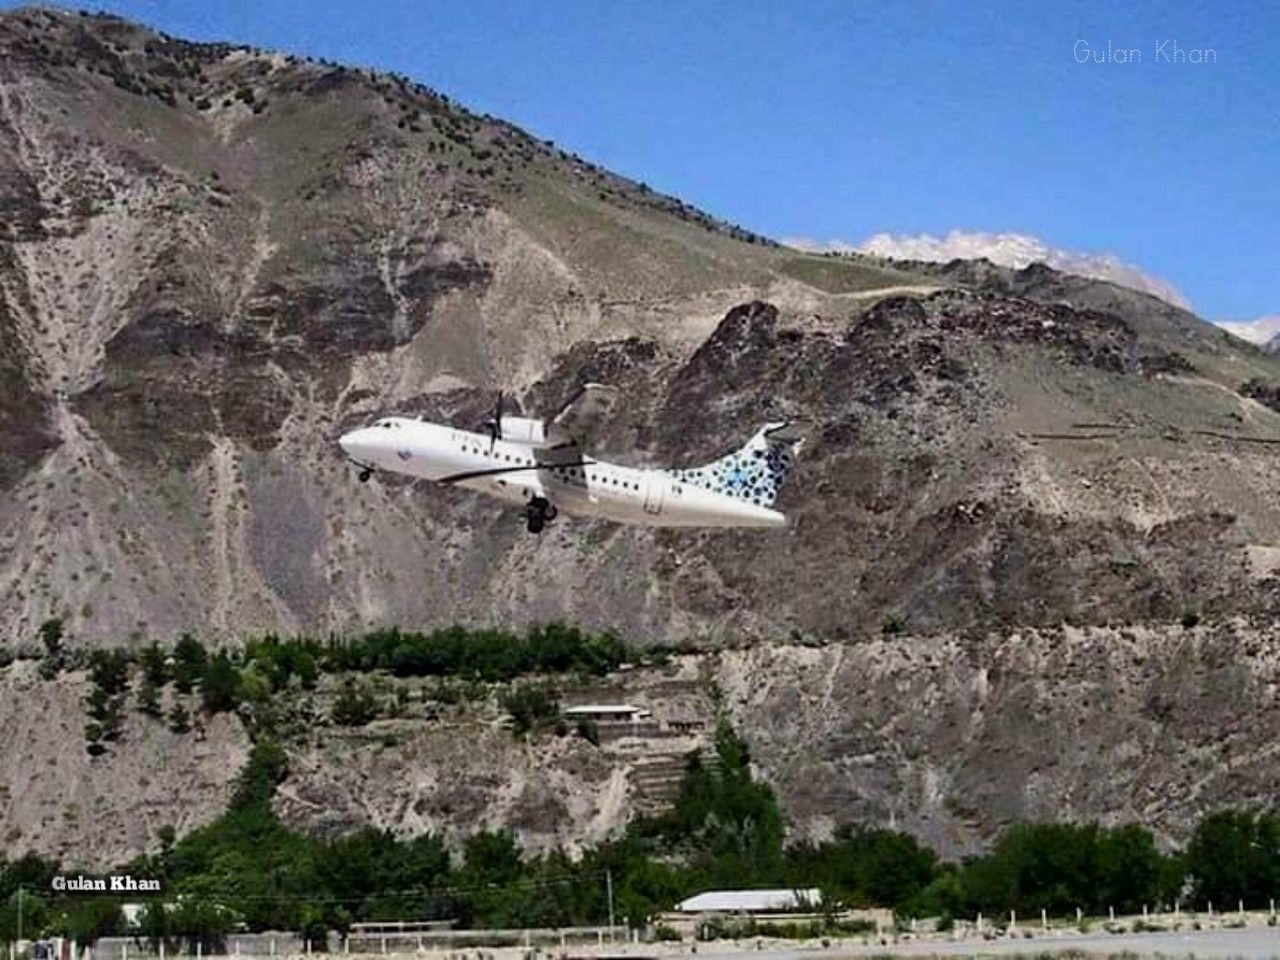 PAKISTAN, ATR the most commonly used aeroplane for Chitral Airport, Kpk,  Pakistan | Natural landmarks, Mount rushmore, Landmarks